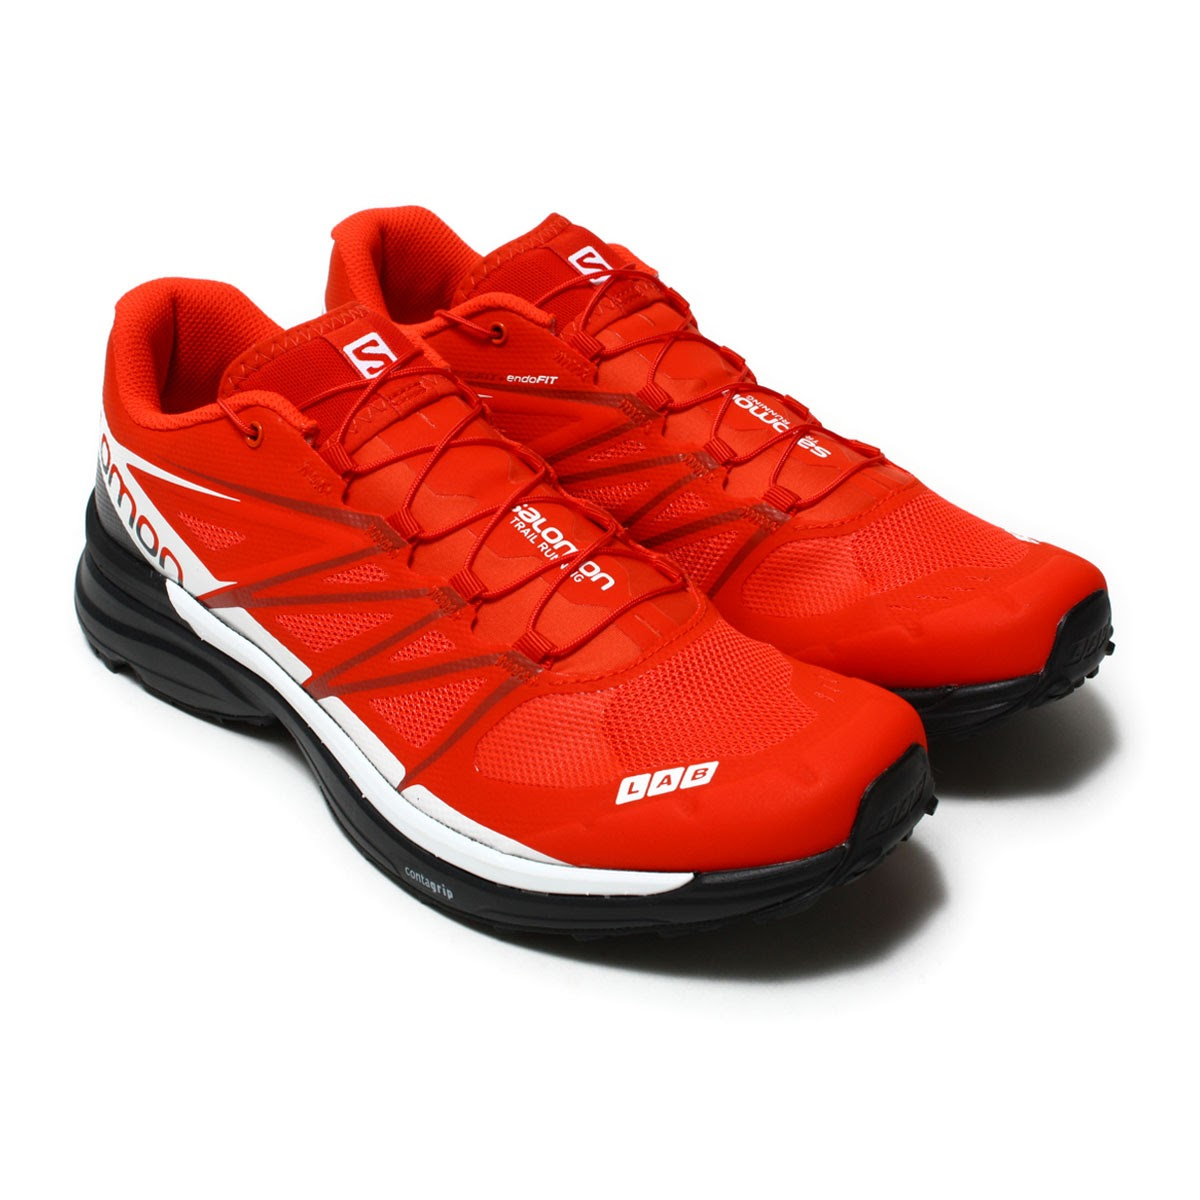 SALOMON S LAB WINGS 8 (Salomon S laboratory Wings 8) RACING REDBLACKWHITE 17SU I